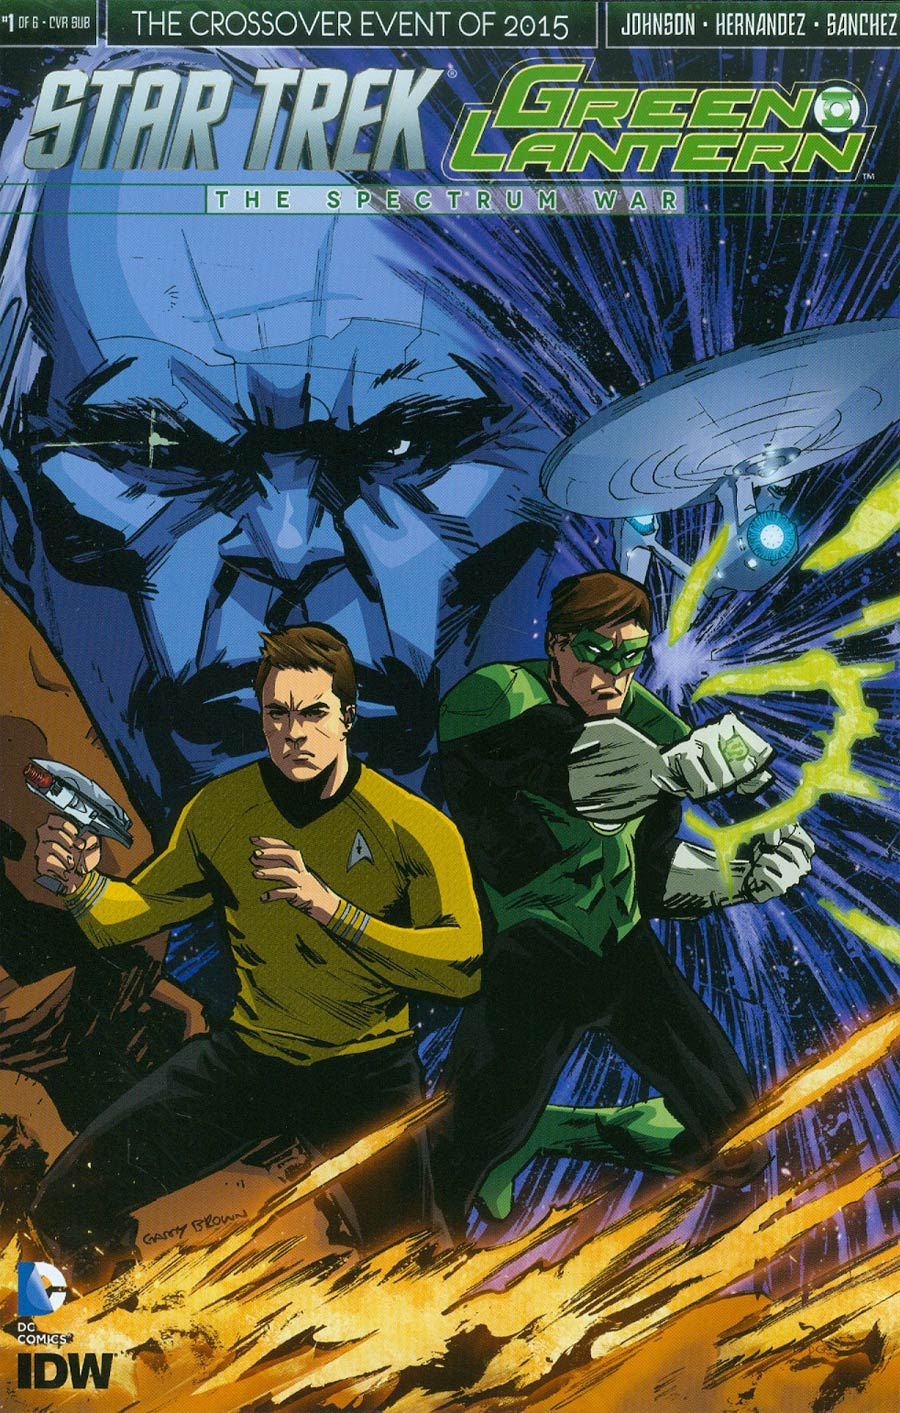 Star Trek Green Lantern #1 Cover D Variant Garry Brown Subscription Cover